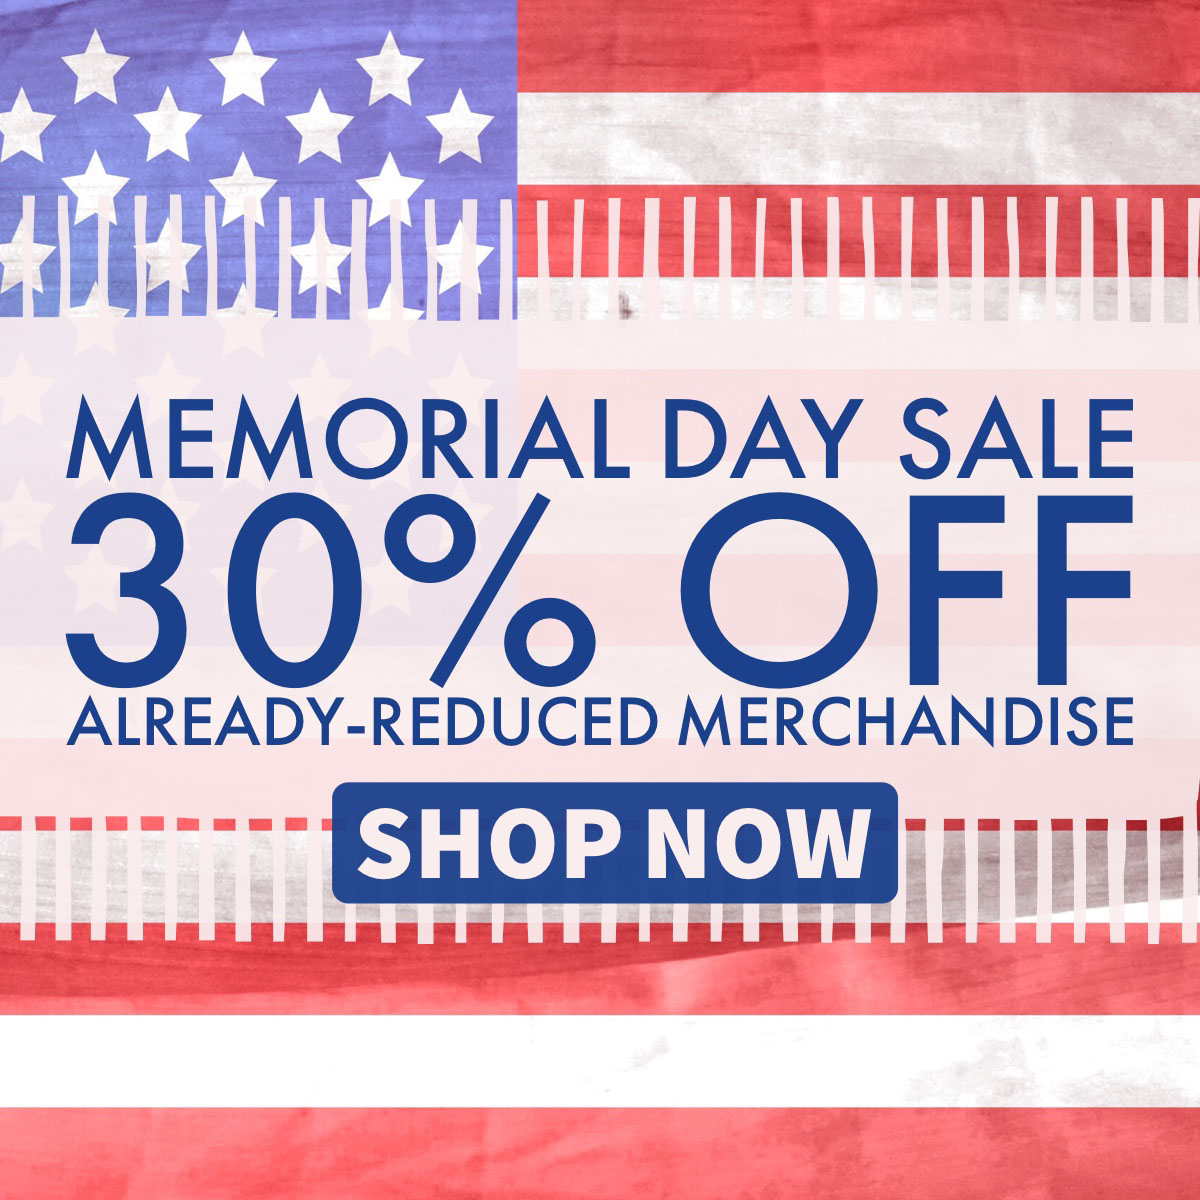 Memorial Day Sale30% off Already-Reduced Merchandise  Memorial Day Sale30% off Already-Reduced Merchandise  Shop Now